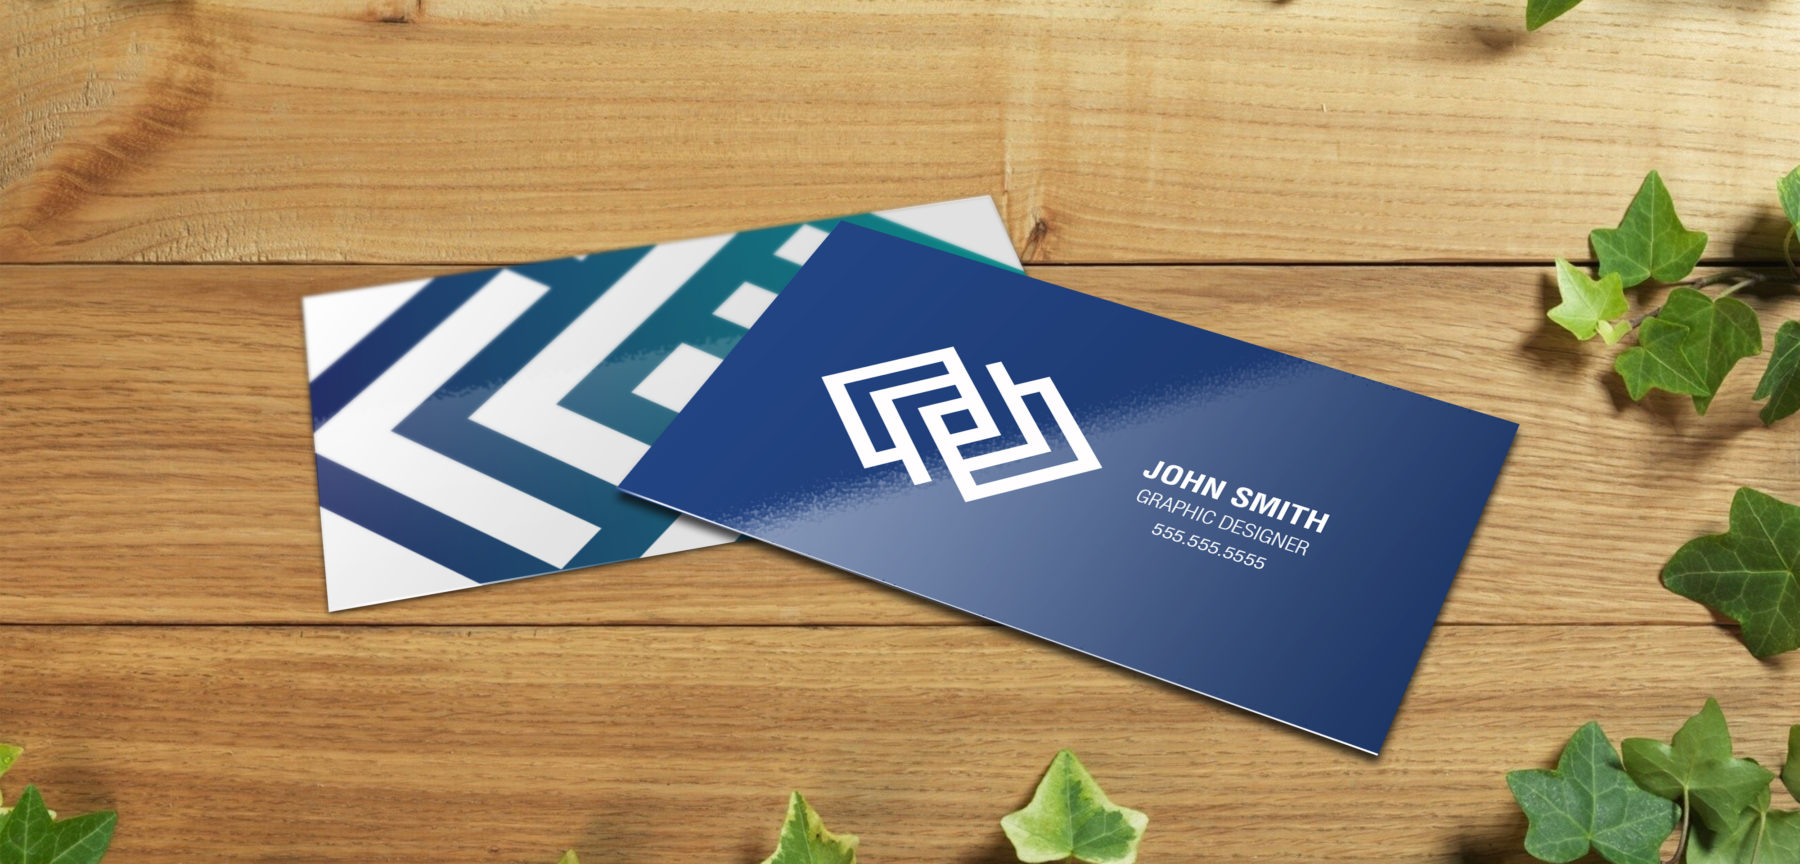 16pt uv high gloss business card